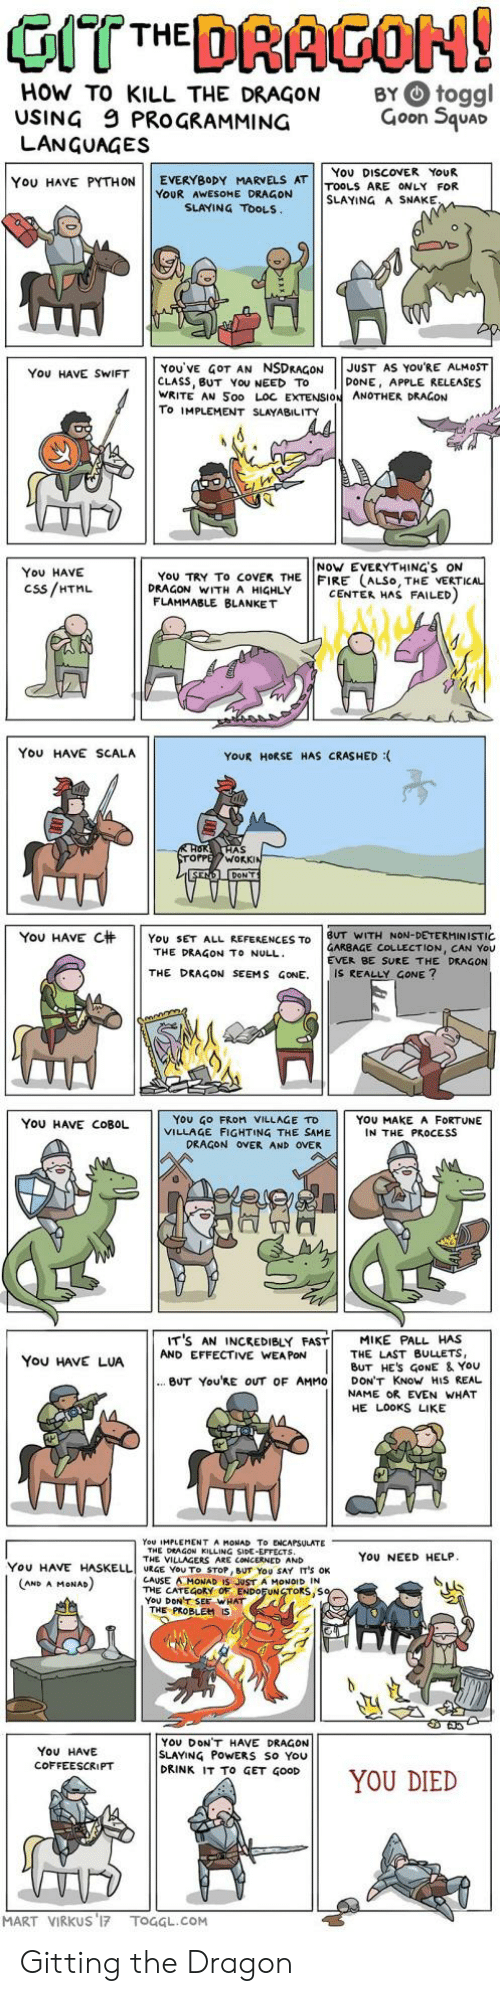 Get Good: HOW TO KILL THE DRAGON  USING 9 PROGRAMMING  LANGUAGES  BY O toggl  Goon Squar  You DISCOVER YoUR  YOU HAVE PYTHON | | EVERYBODY MARVELS AT | |TOOLS ARE ONLY FOR  YOUR AWESOME DRAGON  SLAYING A SNAKE  SLAYING TOOLS  YOU'VE GOT AN NSDRAGONJUST AS YOURE ALMOST  CLASS, BUT YoU NEED TO  WRITE AN Soo LOC EXTENSION ANOTHER DRAGON  To IMPLEMENT SLAYABILITY  You HAVE SWIFT  DONE, APPLE RELEASES  NoW EVERYTHING'S ON  You HAVE  Css/HTML  YoU TRY To coVEK THE FIRE (ALSo, THE VERTI  DRAGON WITH A HIGHLY  CENTER HAS FAILED  FLAMMABLE BLANKET  You HAVE SCALA  YOUR HORSE HAS CRASHED :  AS  WORK  YOU HAVE C杄 | | YOU SET ALL REFERENCES TO | BUT WITH NON-DETERMINISTIC  GARBAGE COLLECTION, CAN You  EVER BE SURE THE DRAGON  THE DRAGON TO NULL  THE DRAGON SEEMS GONE. IS REALLY GONE?  YoU GO FRoM VILLAGE TD  VILLAGE FIGHTING THE SAME  YOU HAVE COBOL  YOU MAKE A FORTUNE  IN THE PROCESS  DRAGON OVER AND OVER  IT'S AN INCREDIBLY FAST! MIKE PALL HAS  You HAVE LUAAND EFFECTIVE WANE ES  THE LAST BULLETS,  BUT HES GoNE & YoU  BUT You'RE OUT OF AMMO DON'T KNoW HIS REAL  NAME OR EVEN WHAT  HE LOOKS LIKE  You IMPLEMENT A MONAD To ENCAPSULATE  THE DEAGON KILLING SIDE-EFFECTS  THE VILLAGERS ARE CONCERNED AND  YoU NEED HELP  YOU HAVE HASELLI URGE YOU To STOP, BUT YOU SAY IT'S OK  CAUSE AMONAD IS JUST A MONOID IN  THE CATEGORY OF ENDOFUNSTORS,S  YoU DONT SEE WHAT  AND A MoNAD  THE PROBLEM  YOU DONT HAVE DRAGON  SLAYING PoWERS So You  DRINK IT To GET GOOD  ON11 YOU DIED  You HAVE  COFFEESCRIPT  MART VIRKUS 17 TOGGL.COM Gitting the Dragon